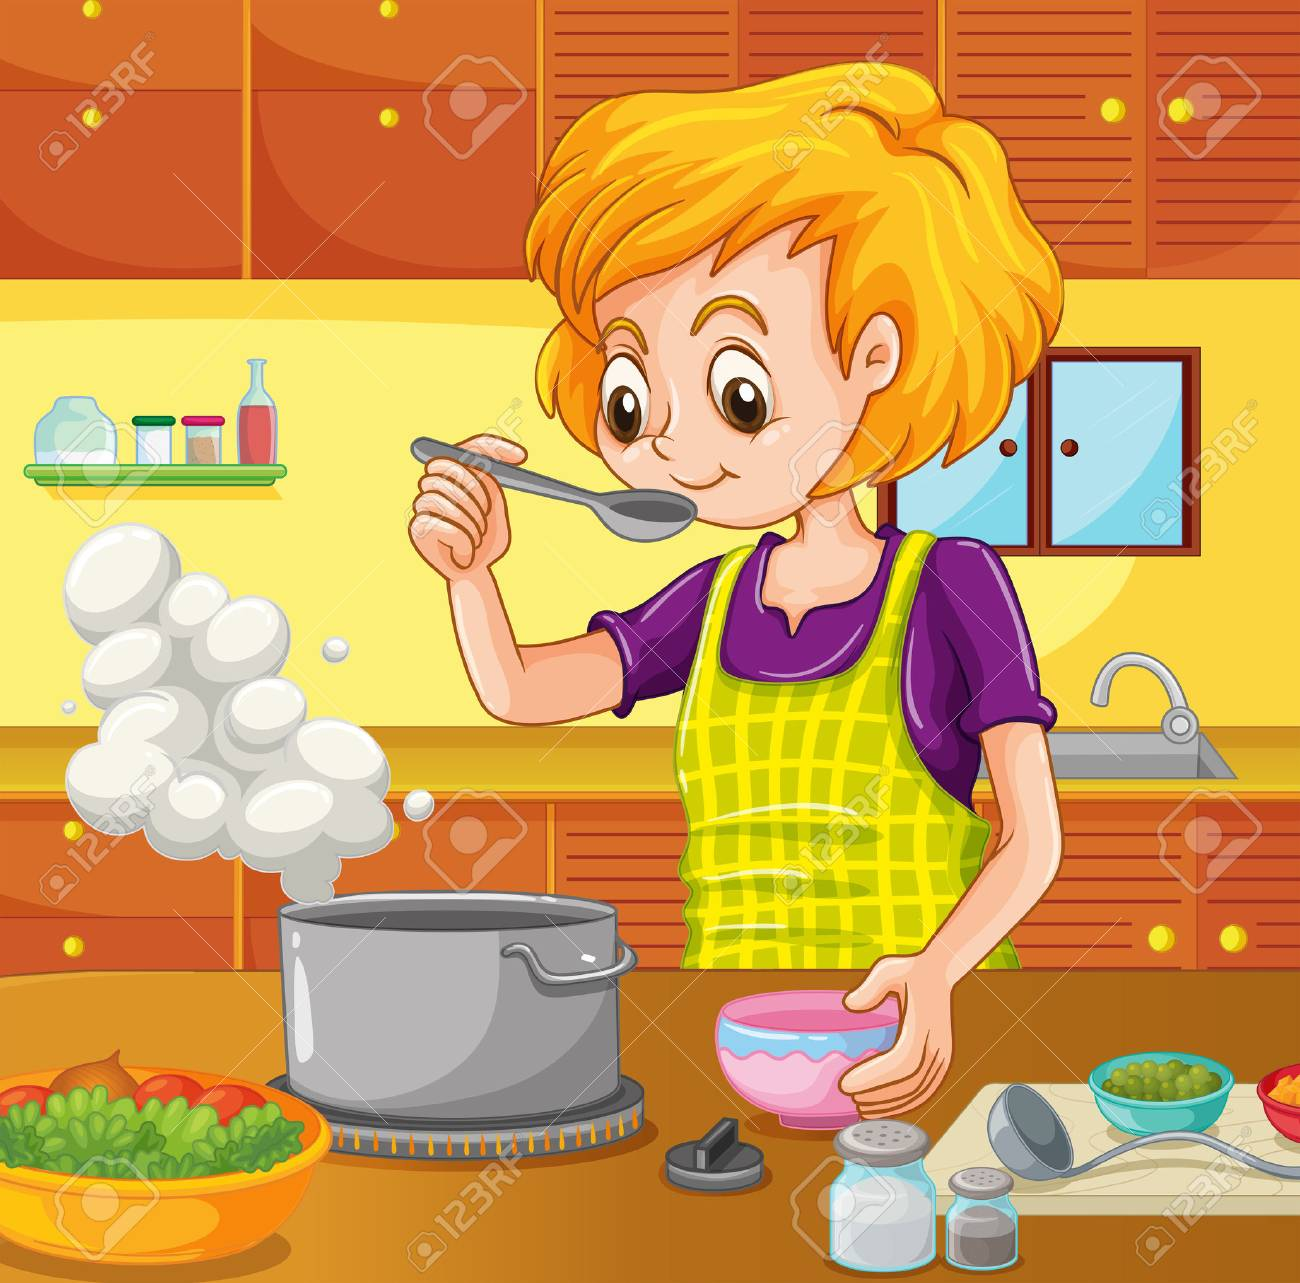 Woman cooking in the kitchen illustration.